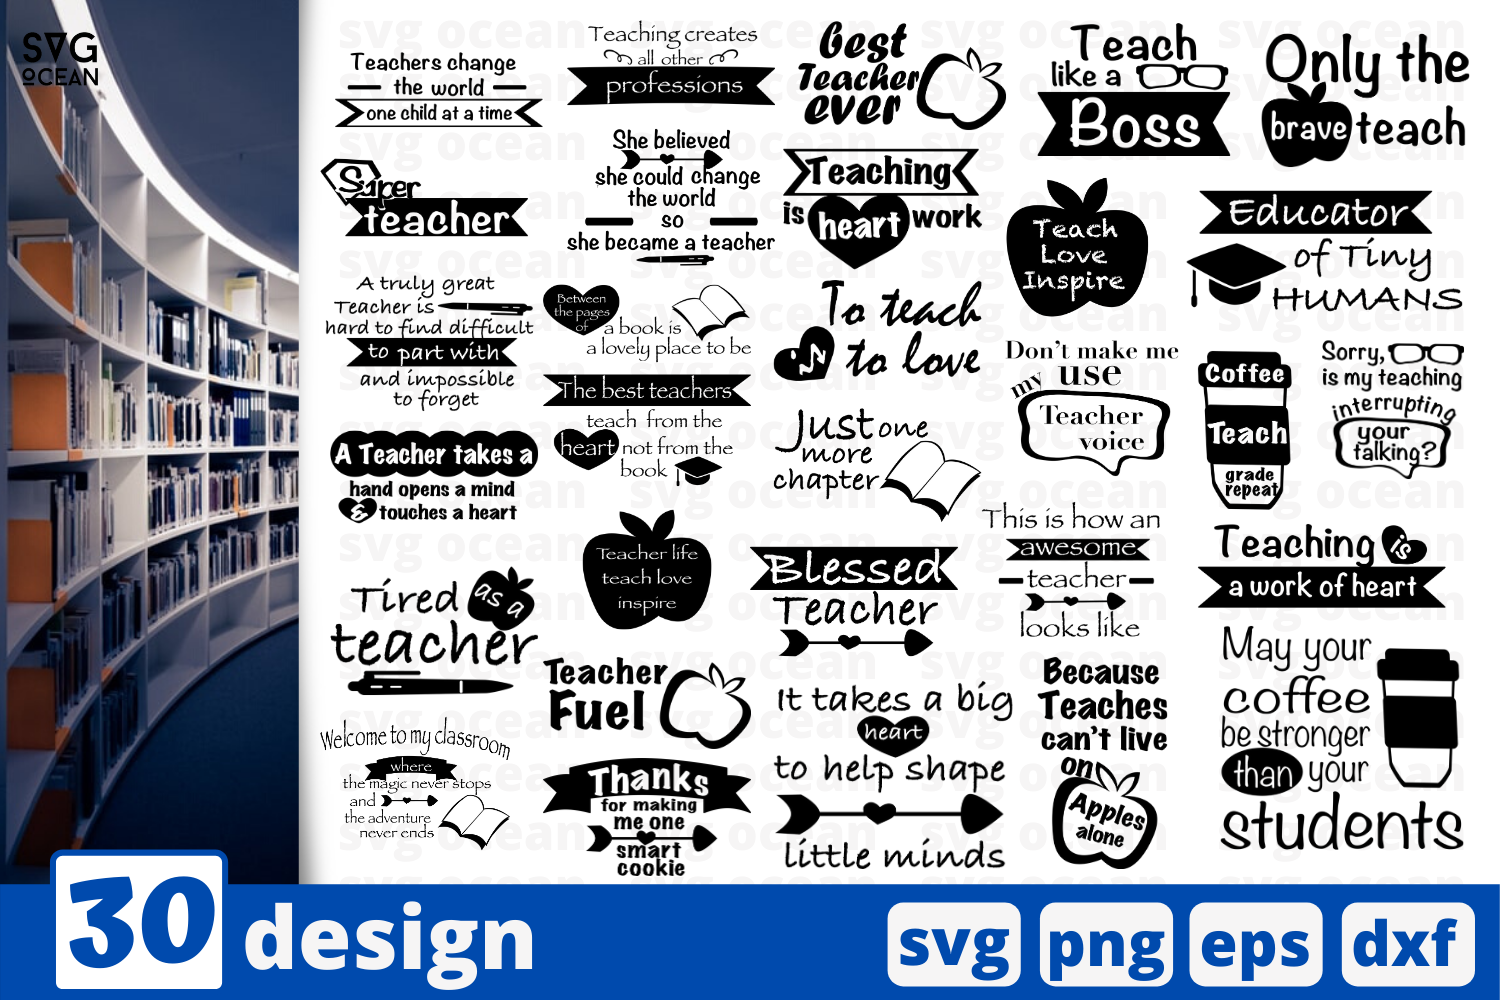 Download Free 30 Designs Teacher Quotes Graphic By Svgocean Creative Fabrica for Cricut Explore, Silhouette and other cutting machines.